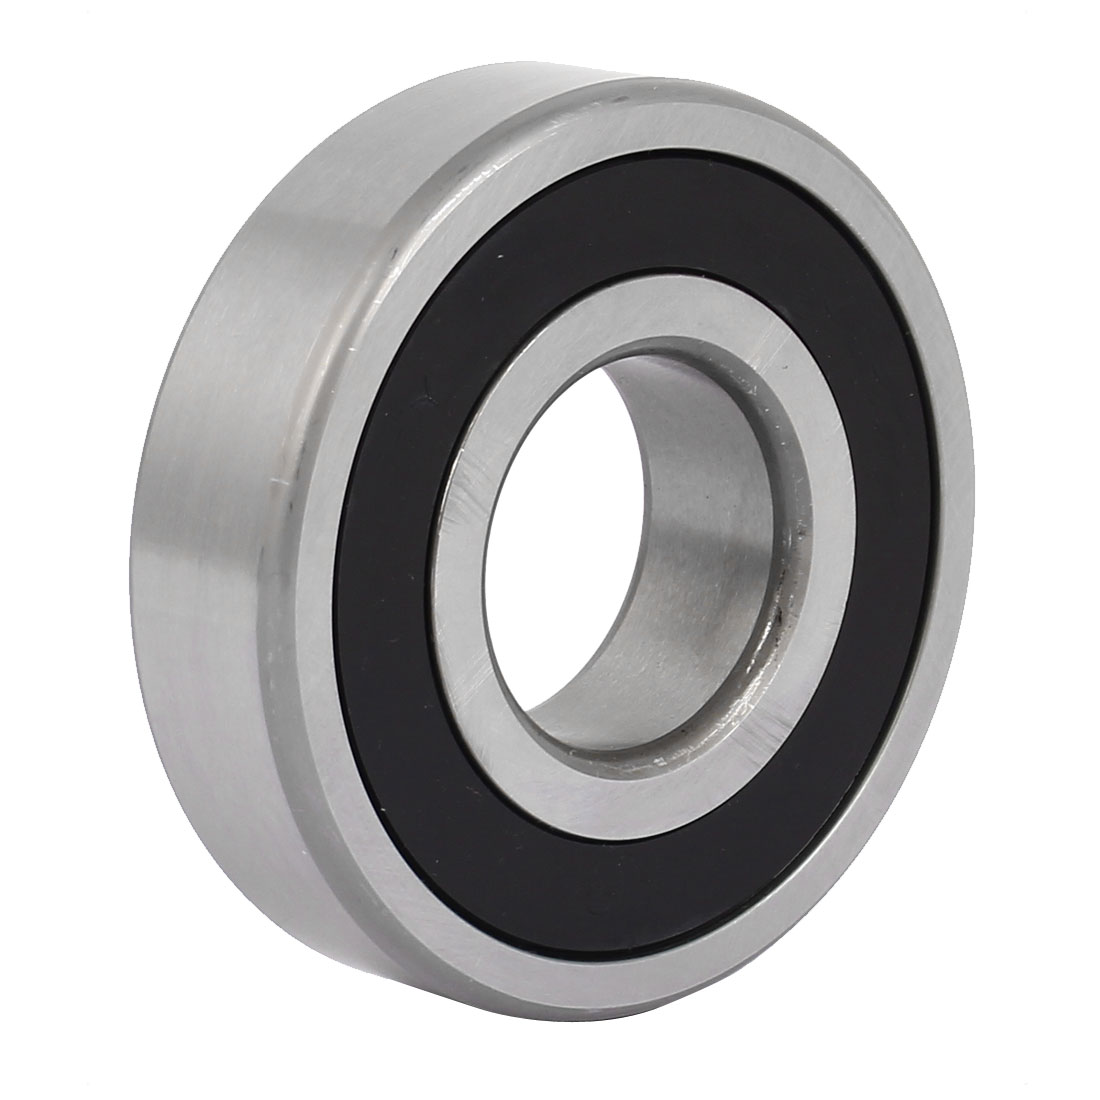 RZ6309 100mm x 45mm x 25mm Dual Side Sealed Deep Groove Ball Bearing